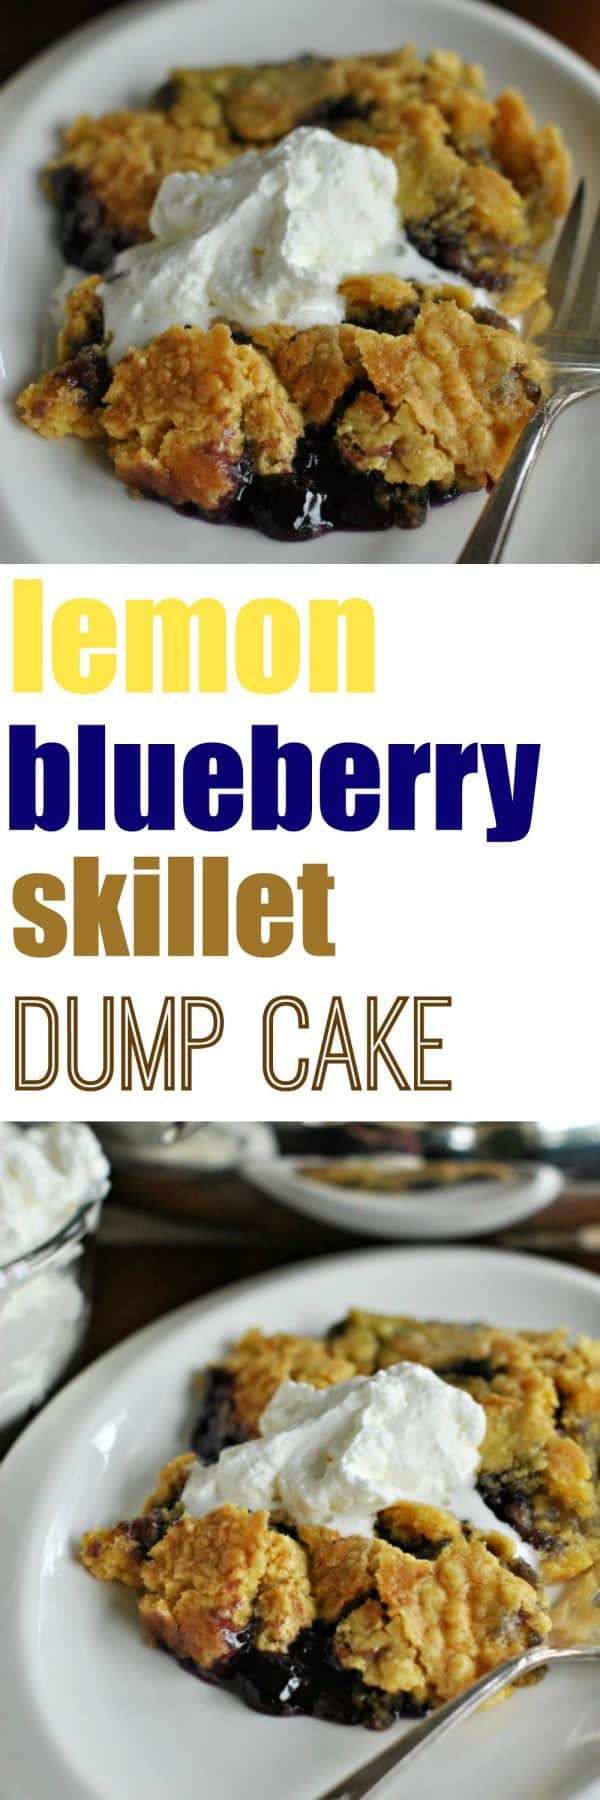 Lemon Blueberry Skillet Dump Cake with Almond Whipped Cream: easy, no mess recipe with pantry ingredients!